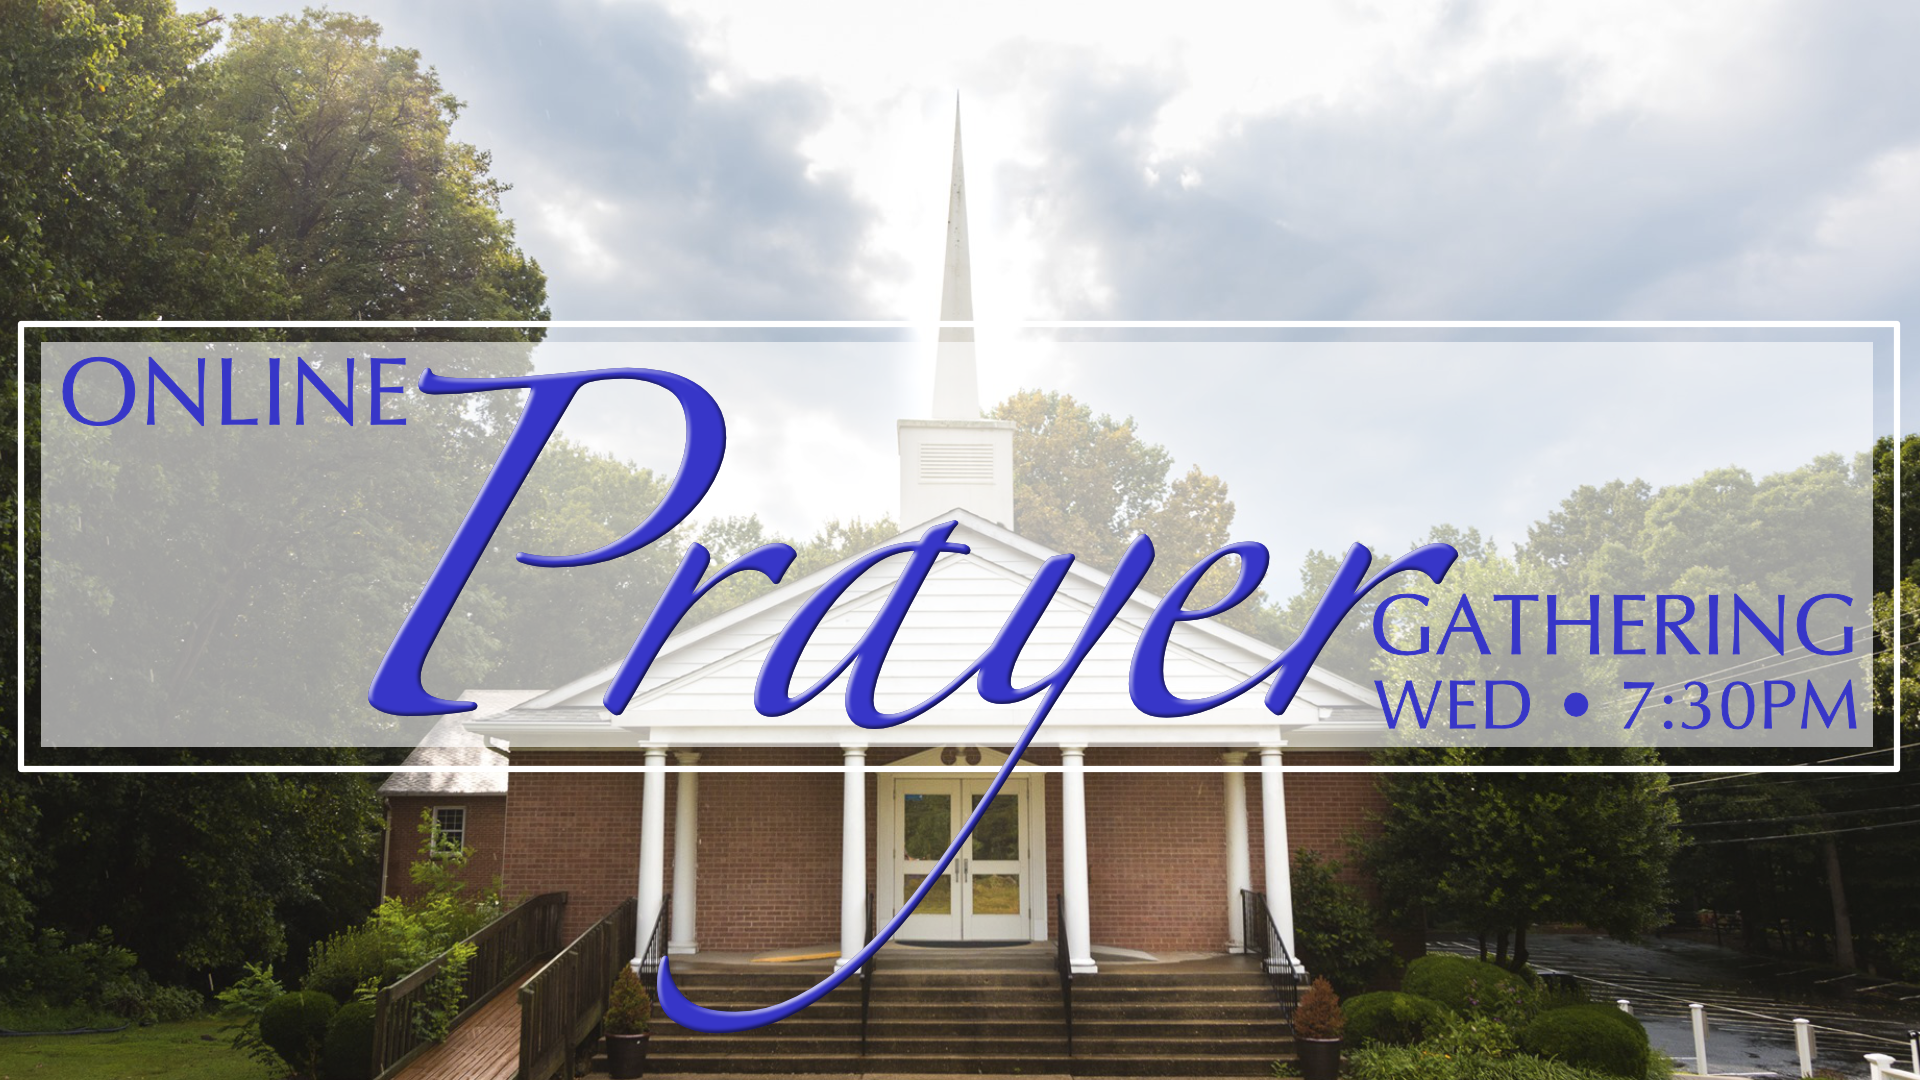 Prayer @ 7:30pm